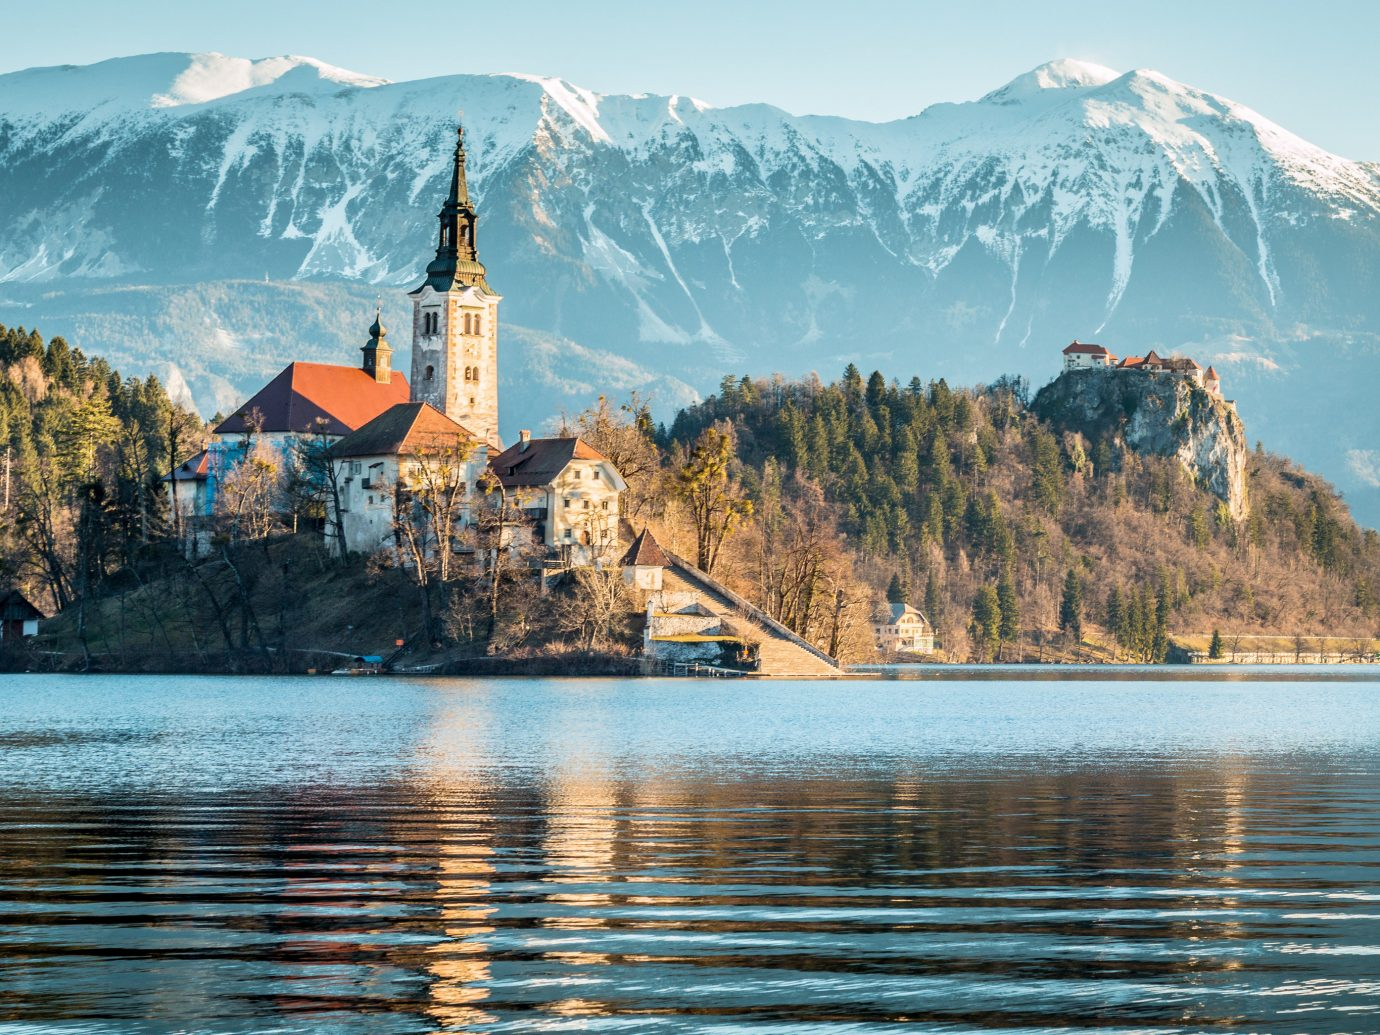 Mountains + Skiing Trip Ideas mountain outdoor water sky reflection Nature Lake mountainous landforms mountain range background morning mount scenery alps tree Sea landscape Winter tourism Coast fjord loch cloud fell surrounded shore distance